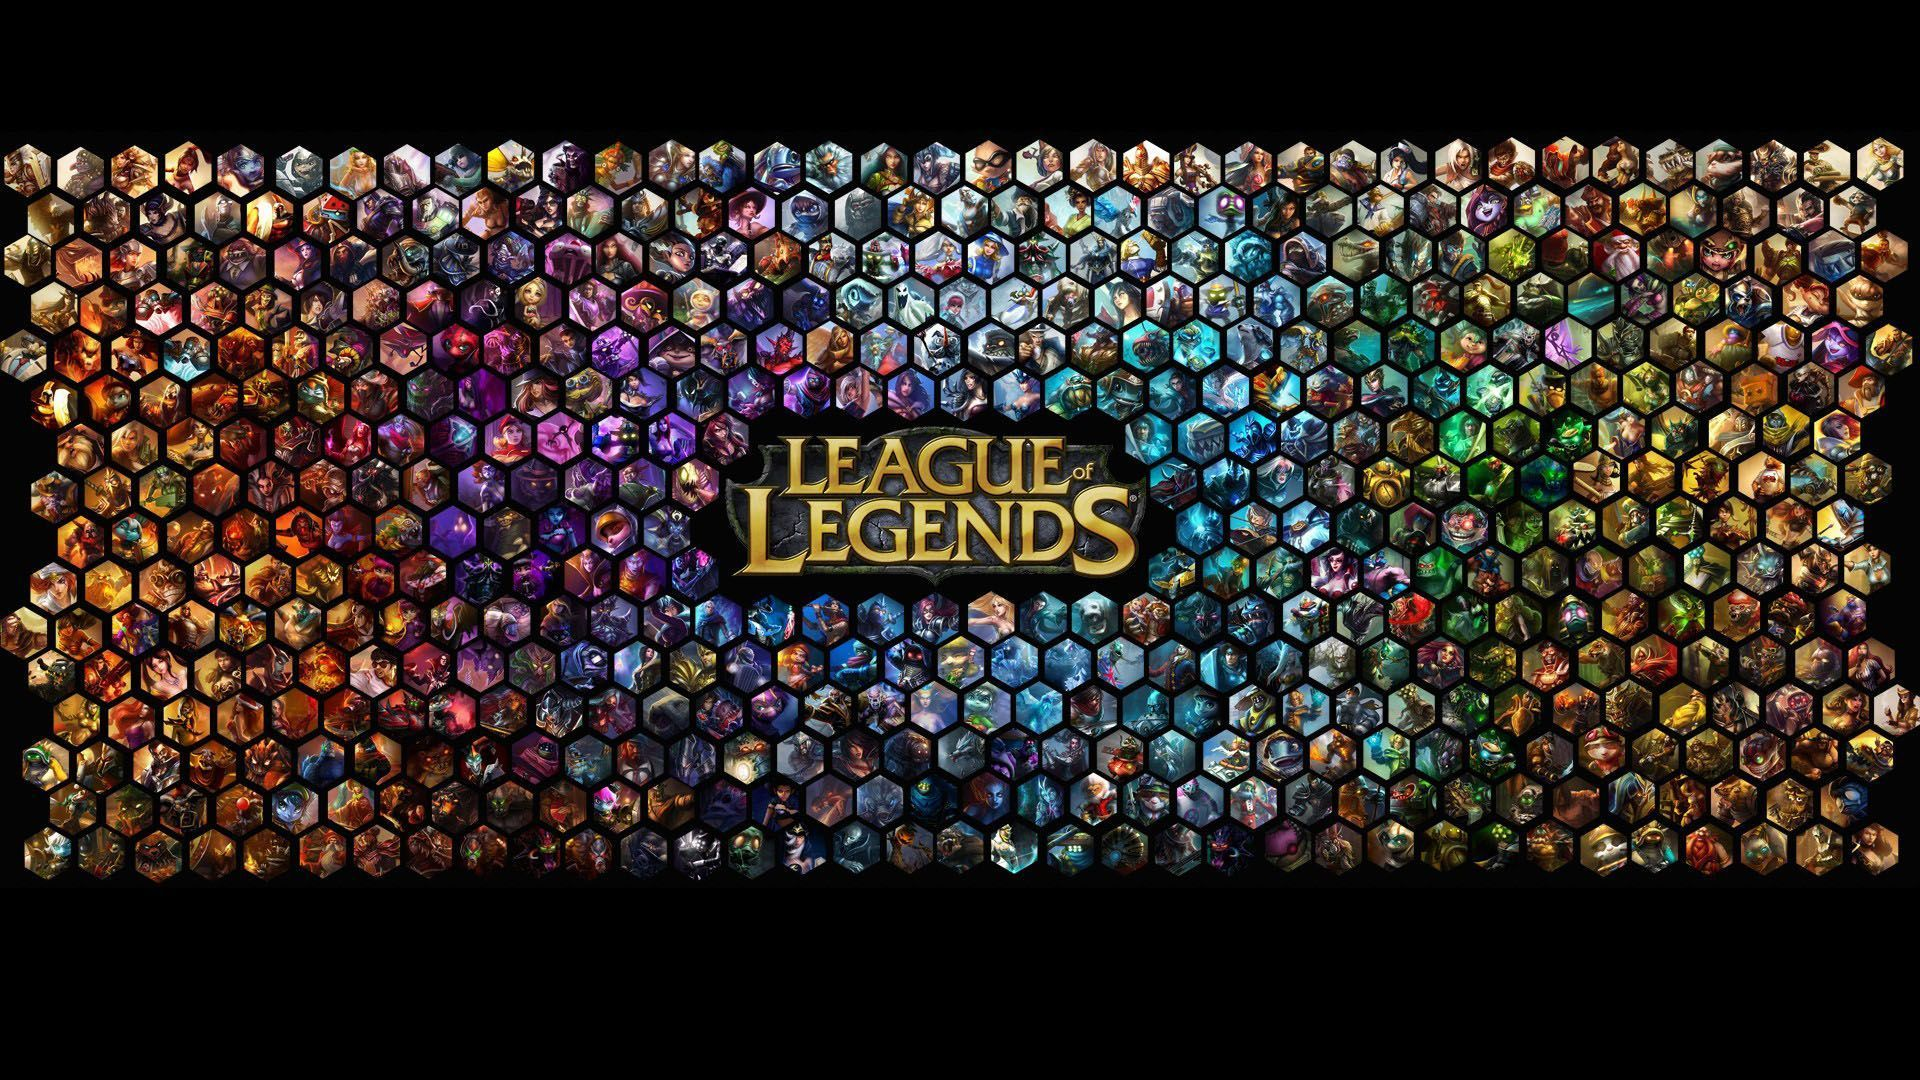 Desktop Backgrounds League Of Legends Group (73+)